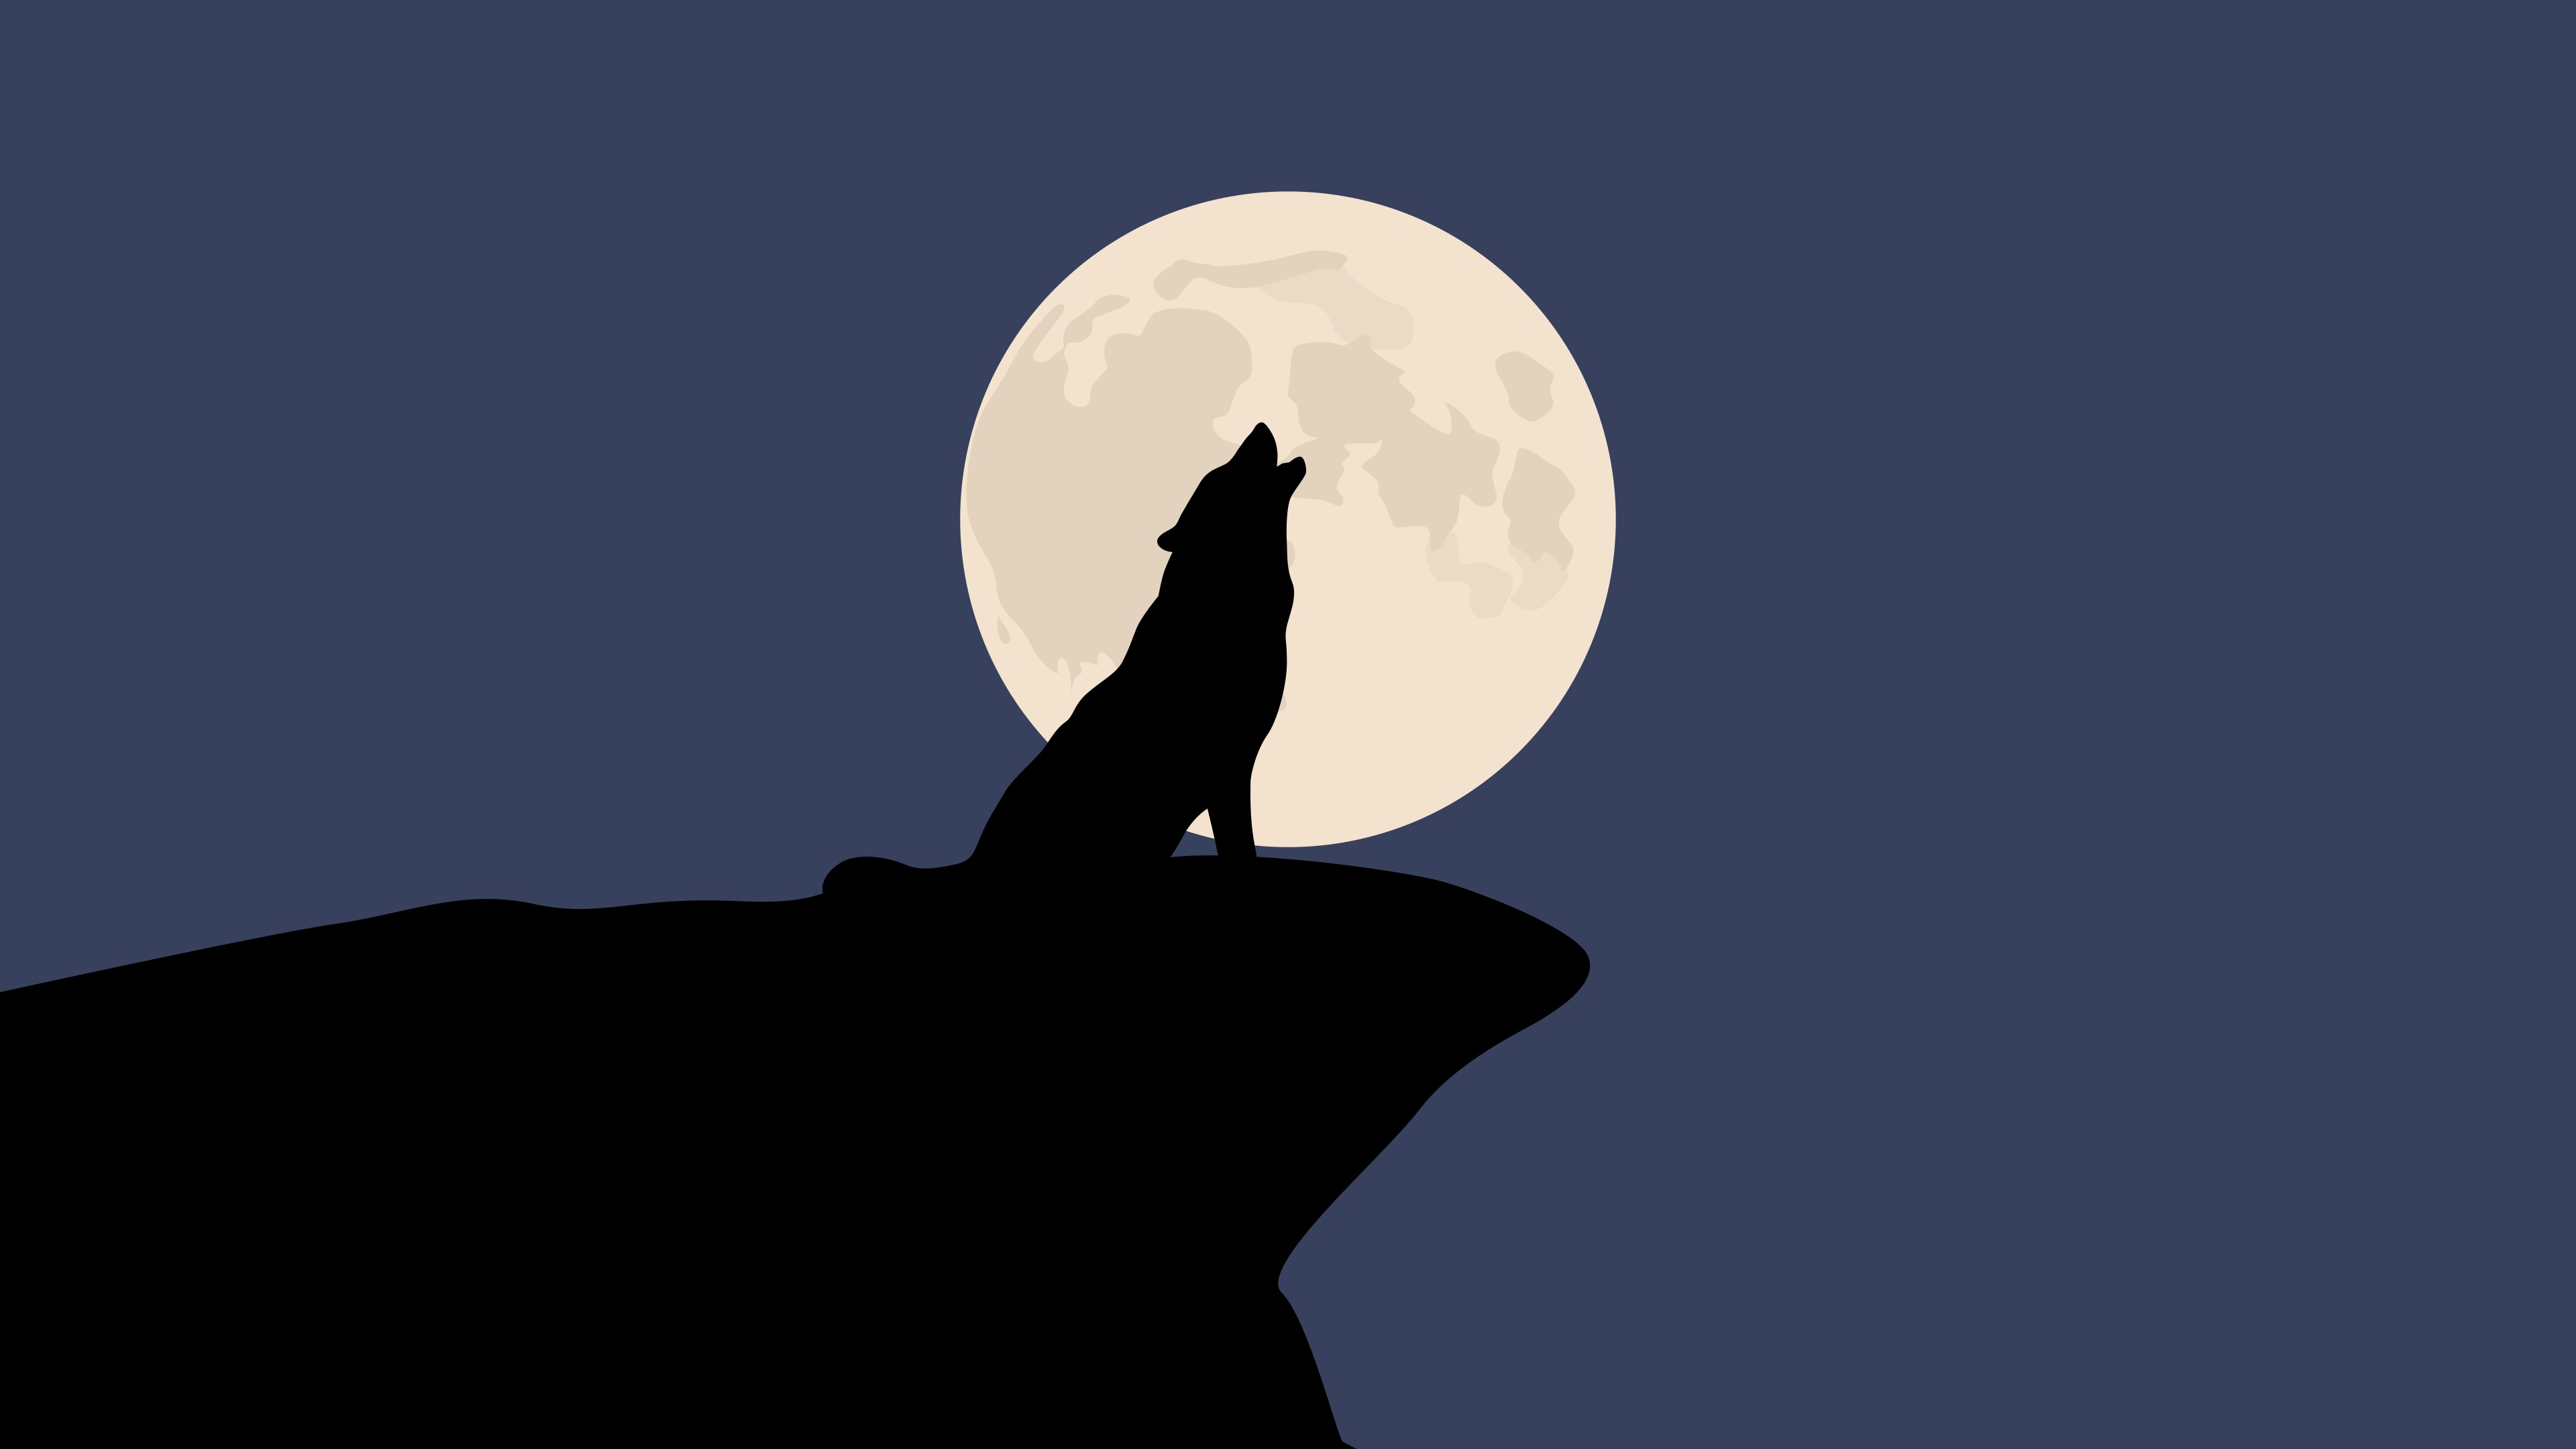 Download Howling Wolf 1920x1200 Resolution HD 4K Wallpaper